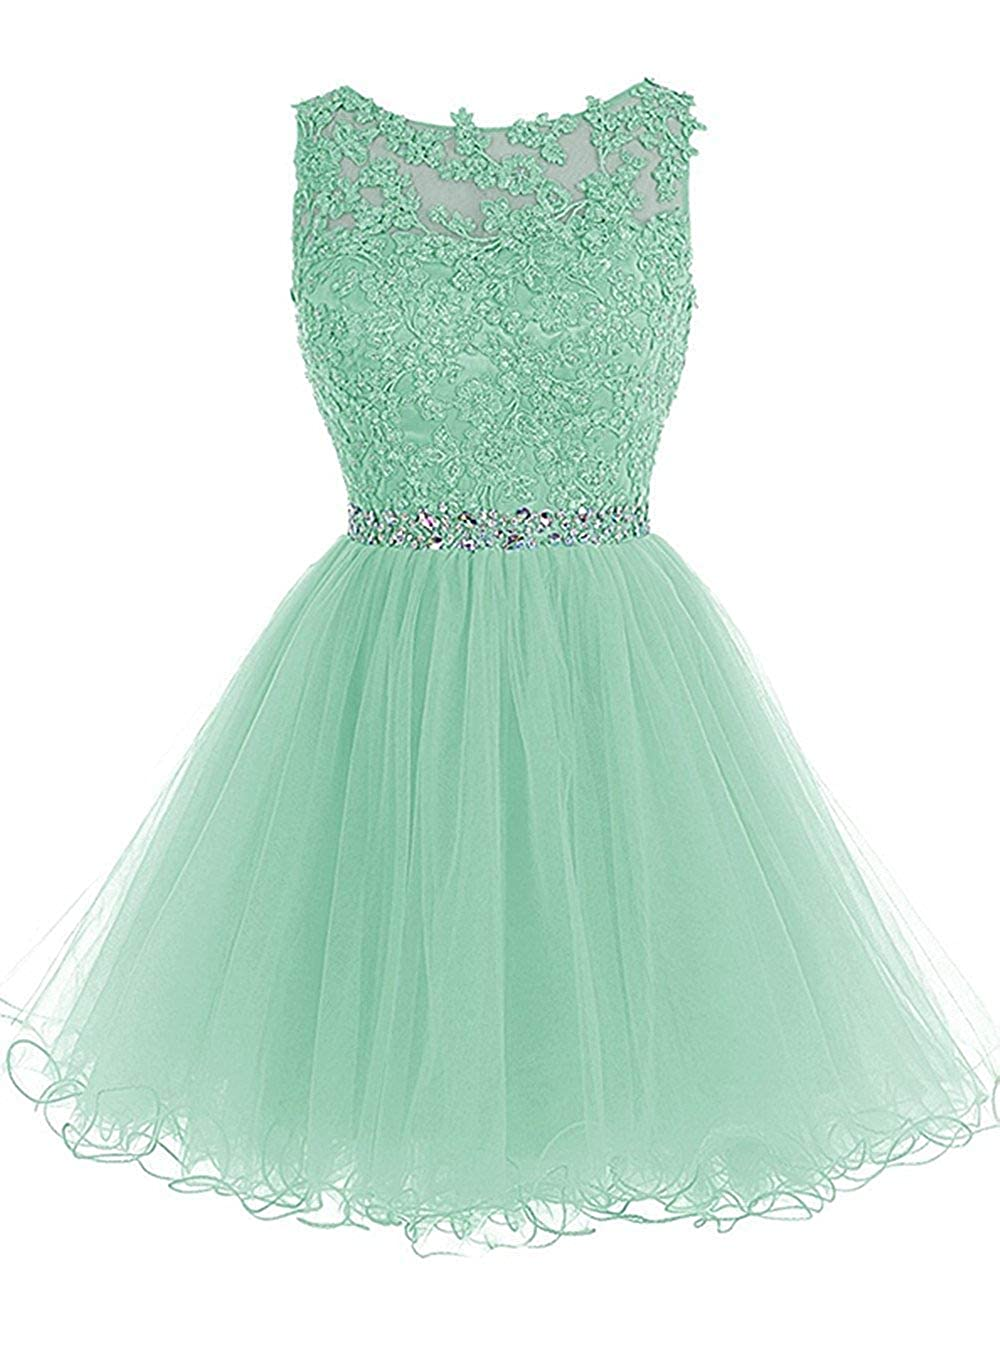 Mint Epinkbridal 2019 Tulle Homecoming Dresses Appliques Beads Short Prom Dresses Cocktail Party Gowns